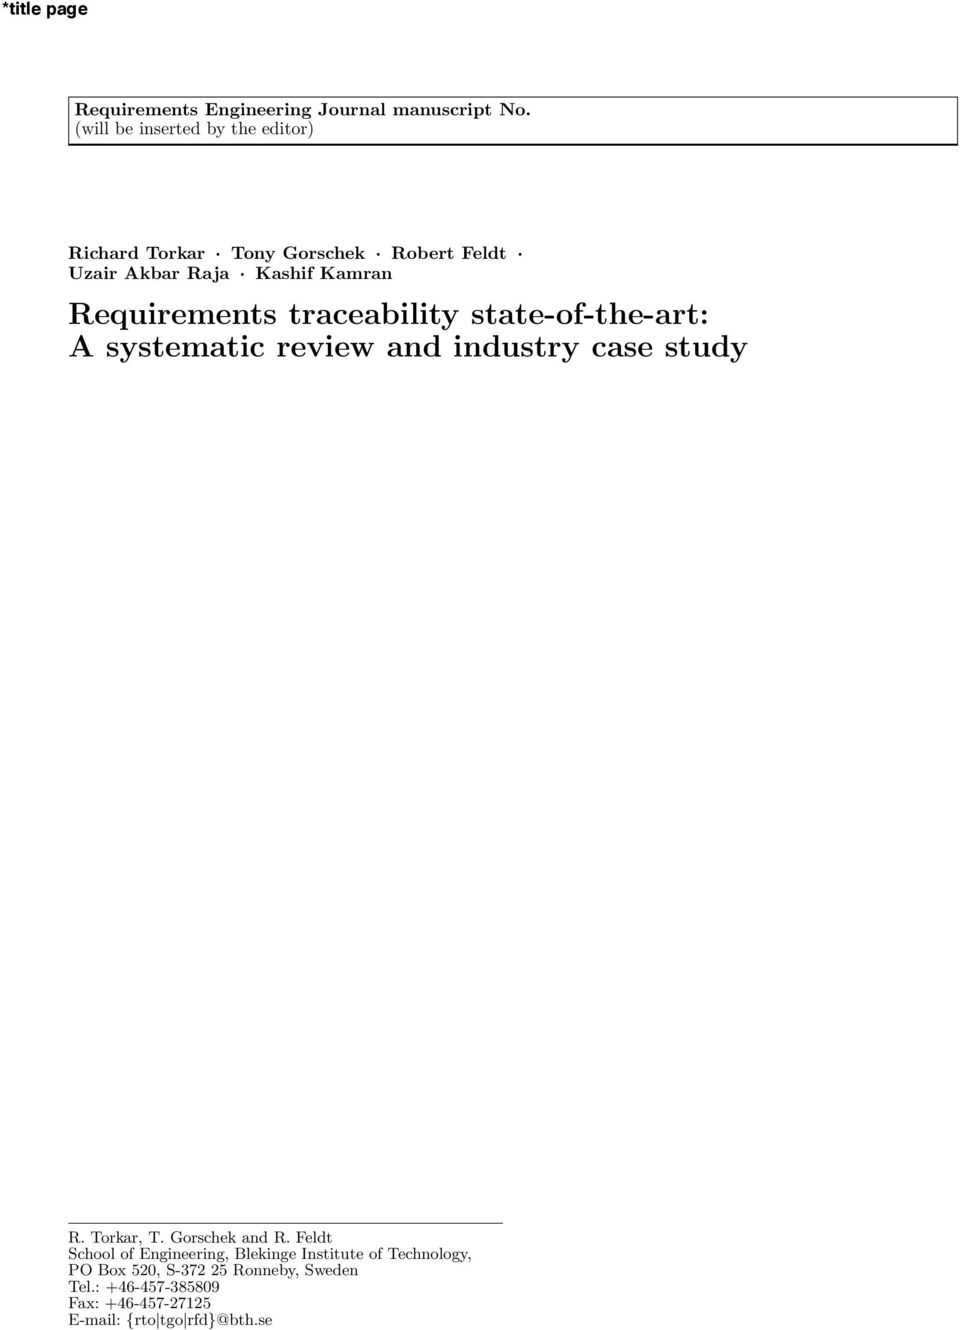 Requirements traceability state-of-the-art: A systematic review and industry case study R. Torkar, T.